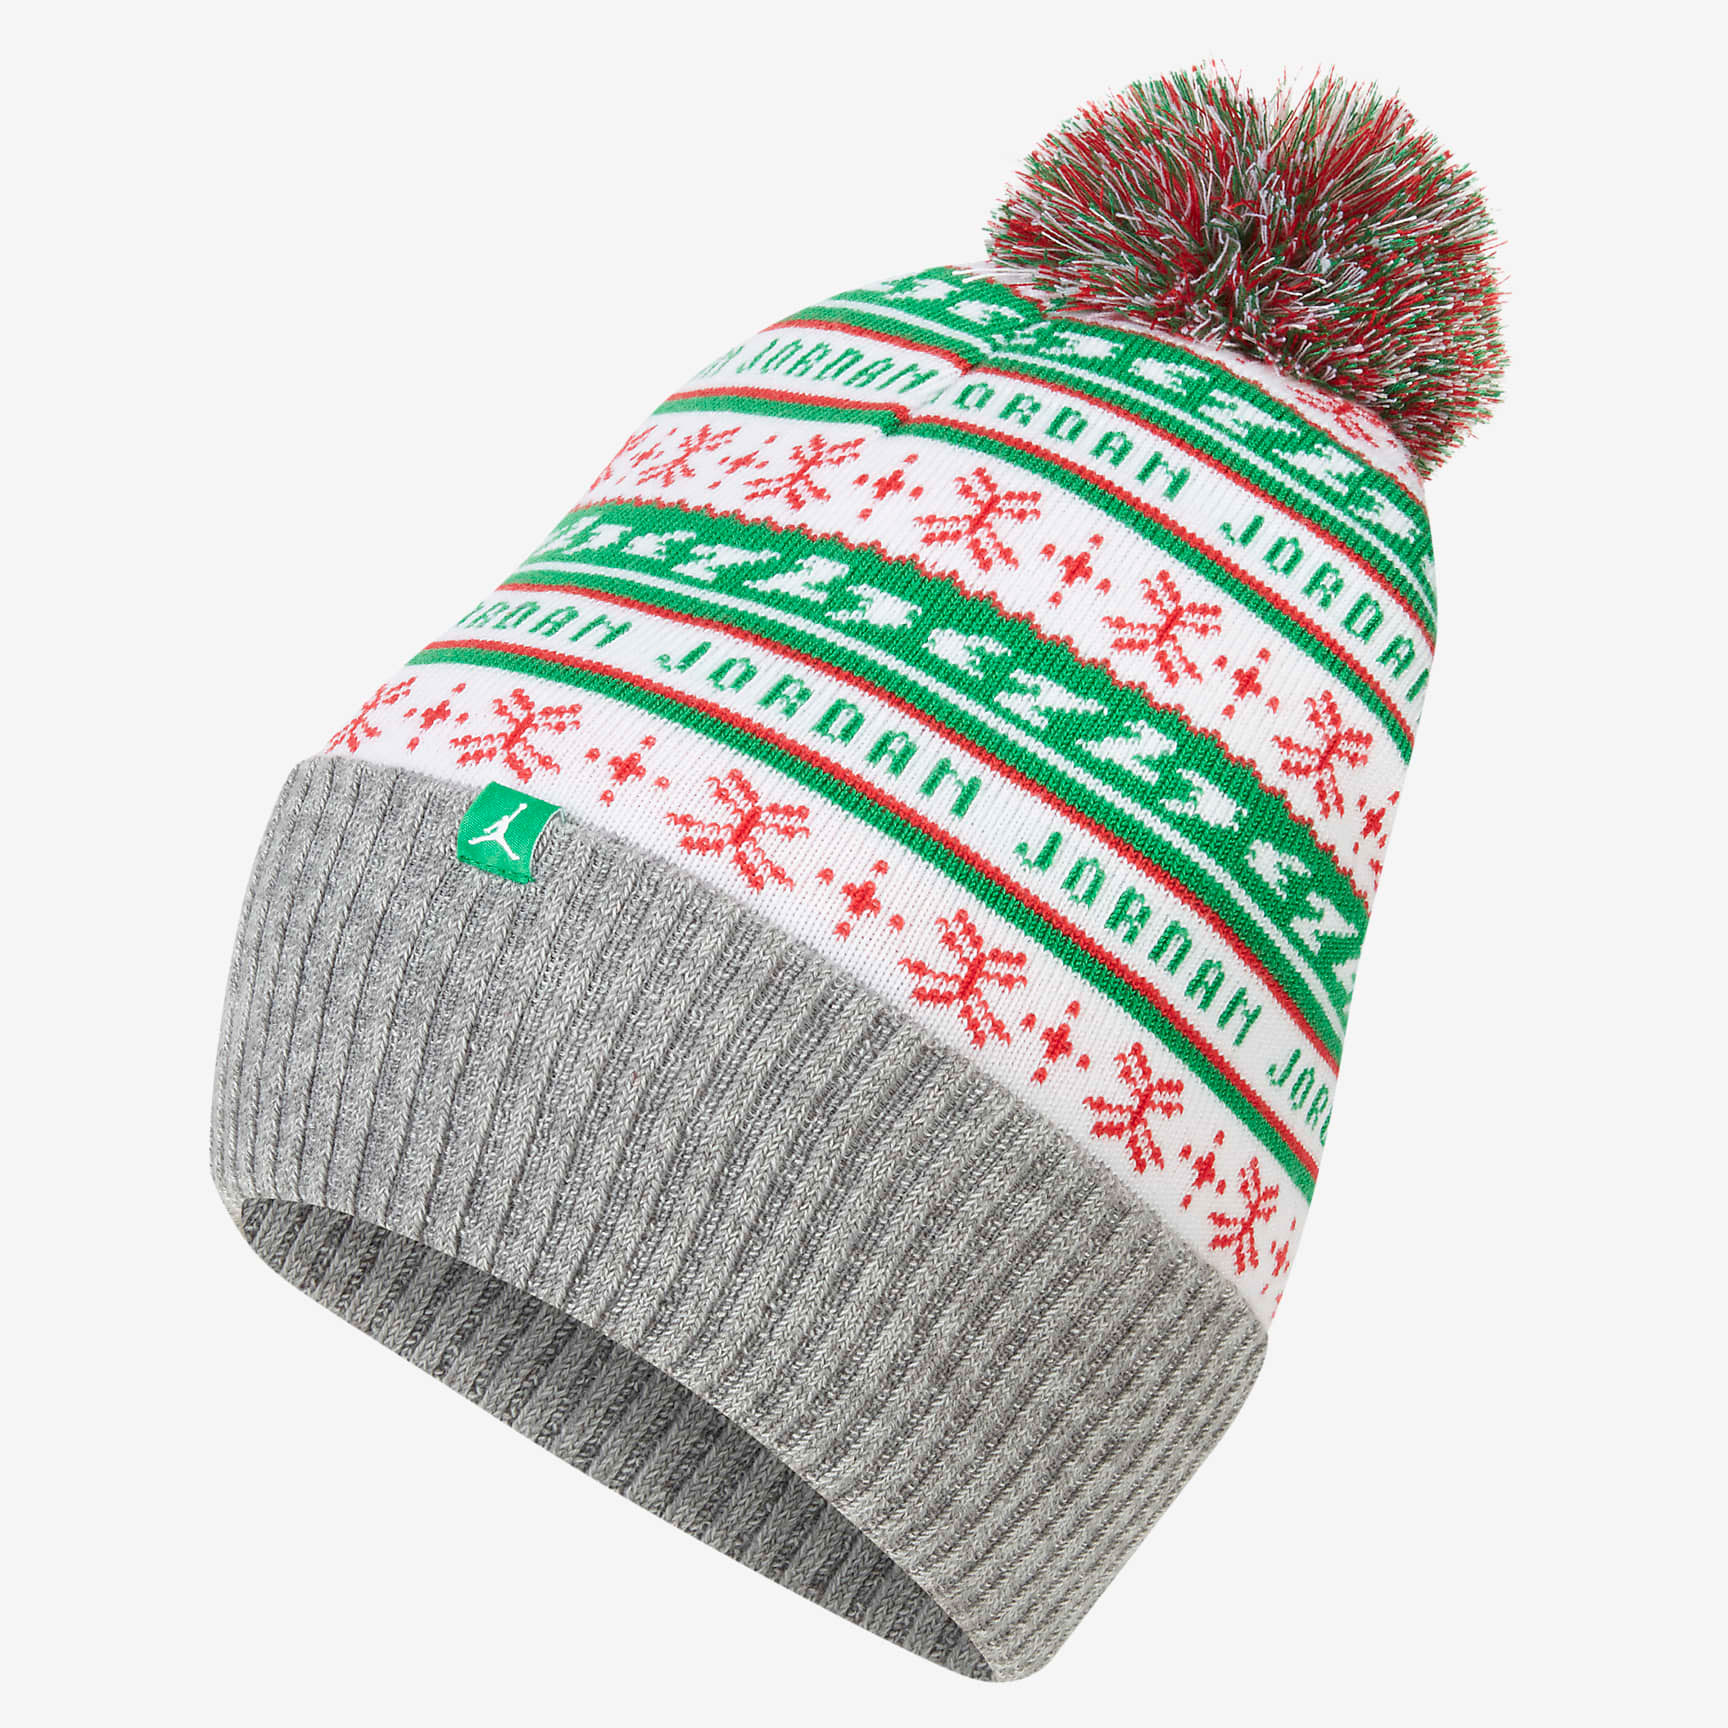 jordan-jumpman-holiday-ugly-sweater-beanie-hat-green-white-red-1